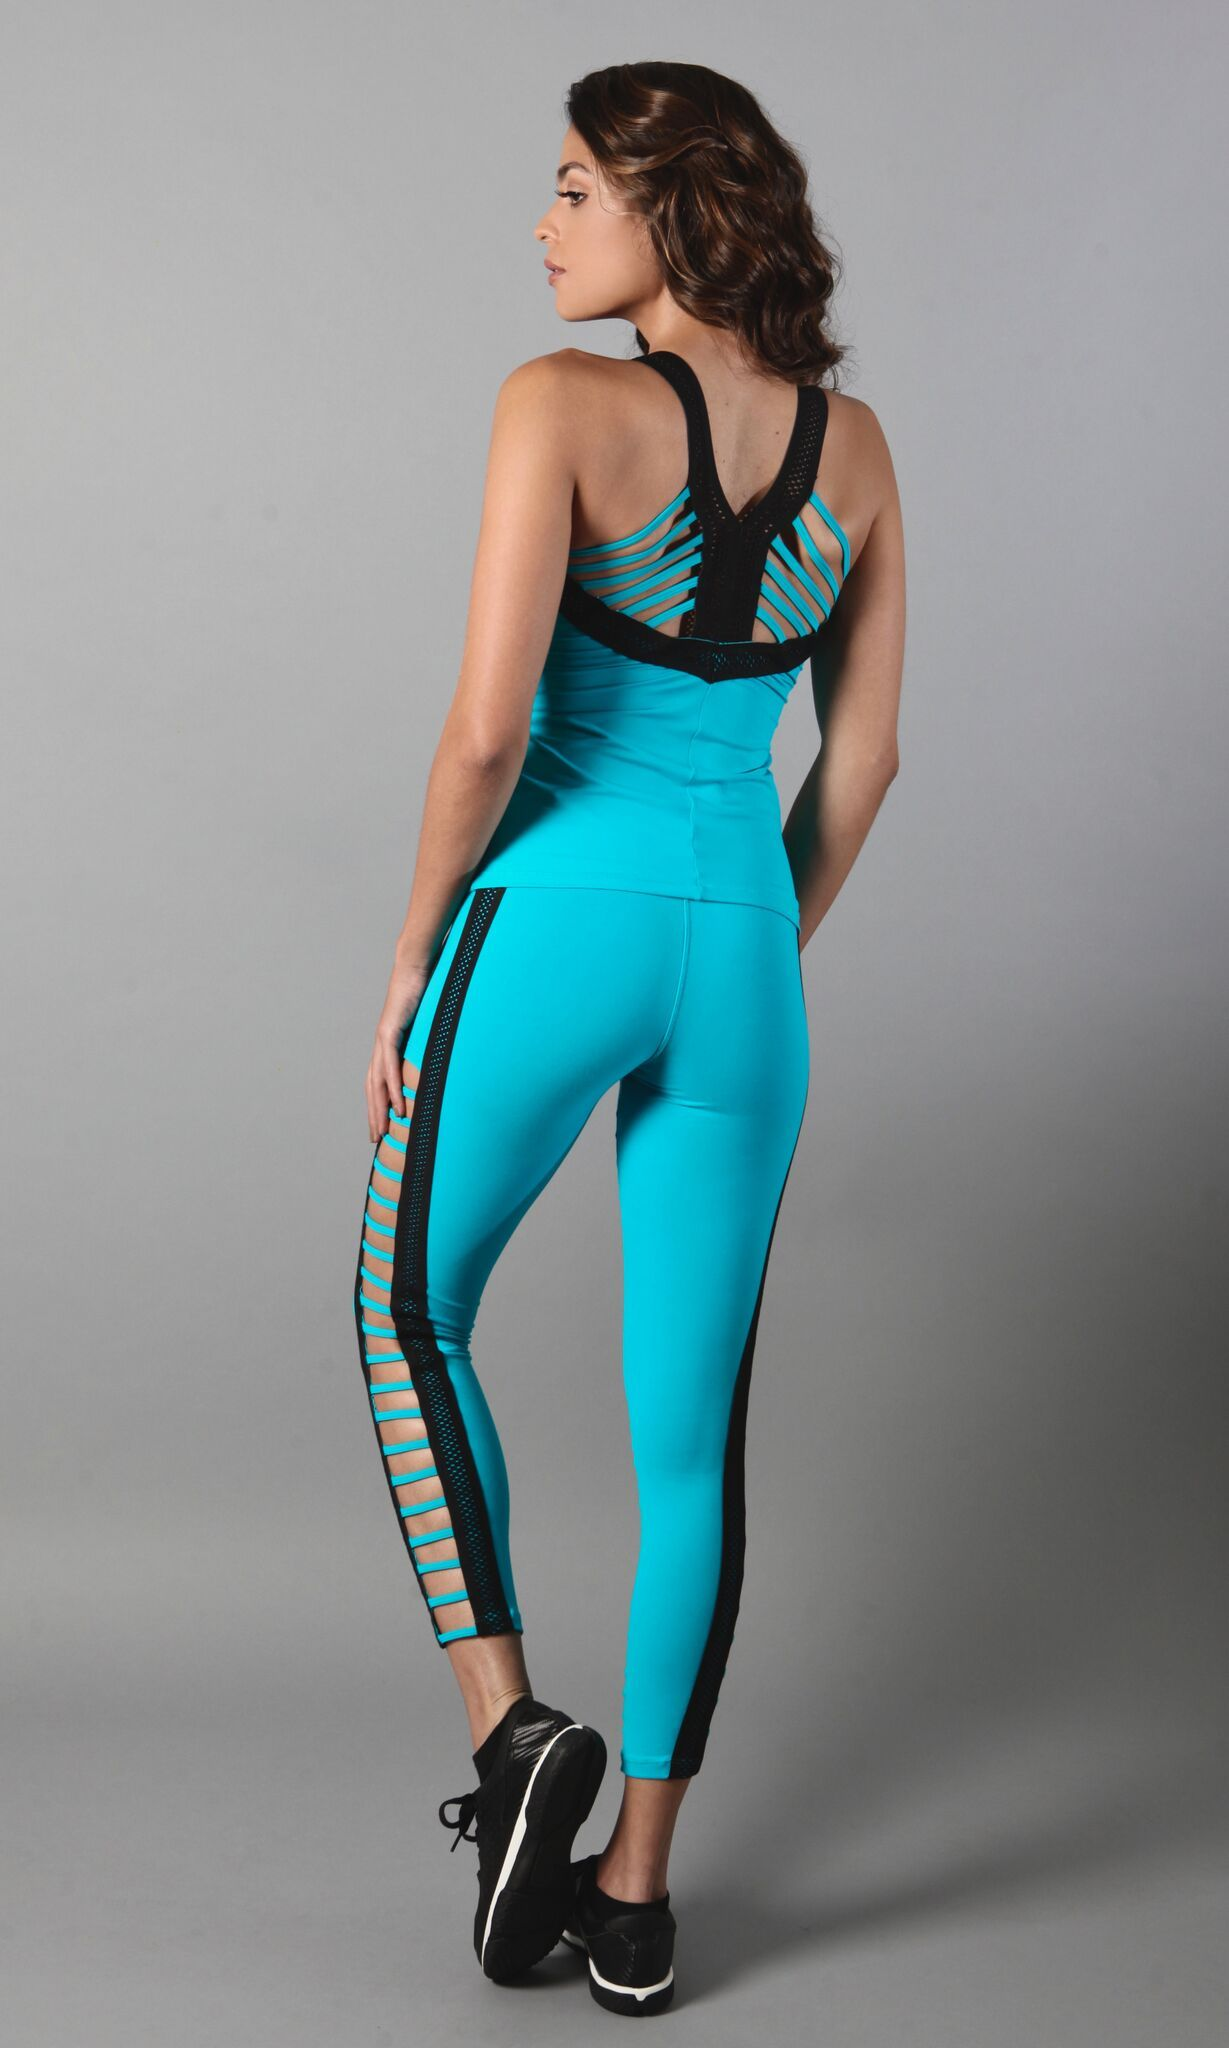 Teal and Black Legging L7028